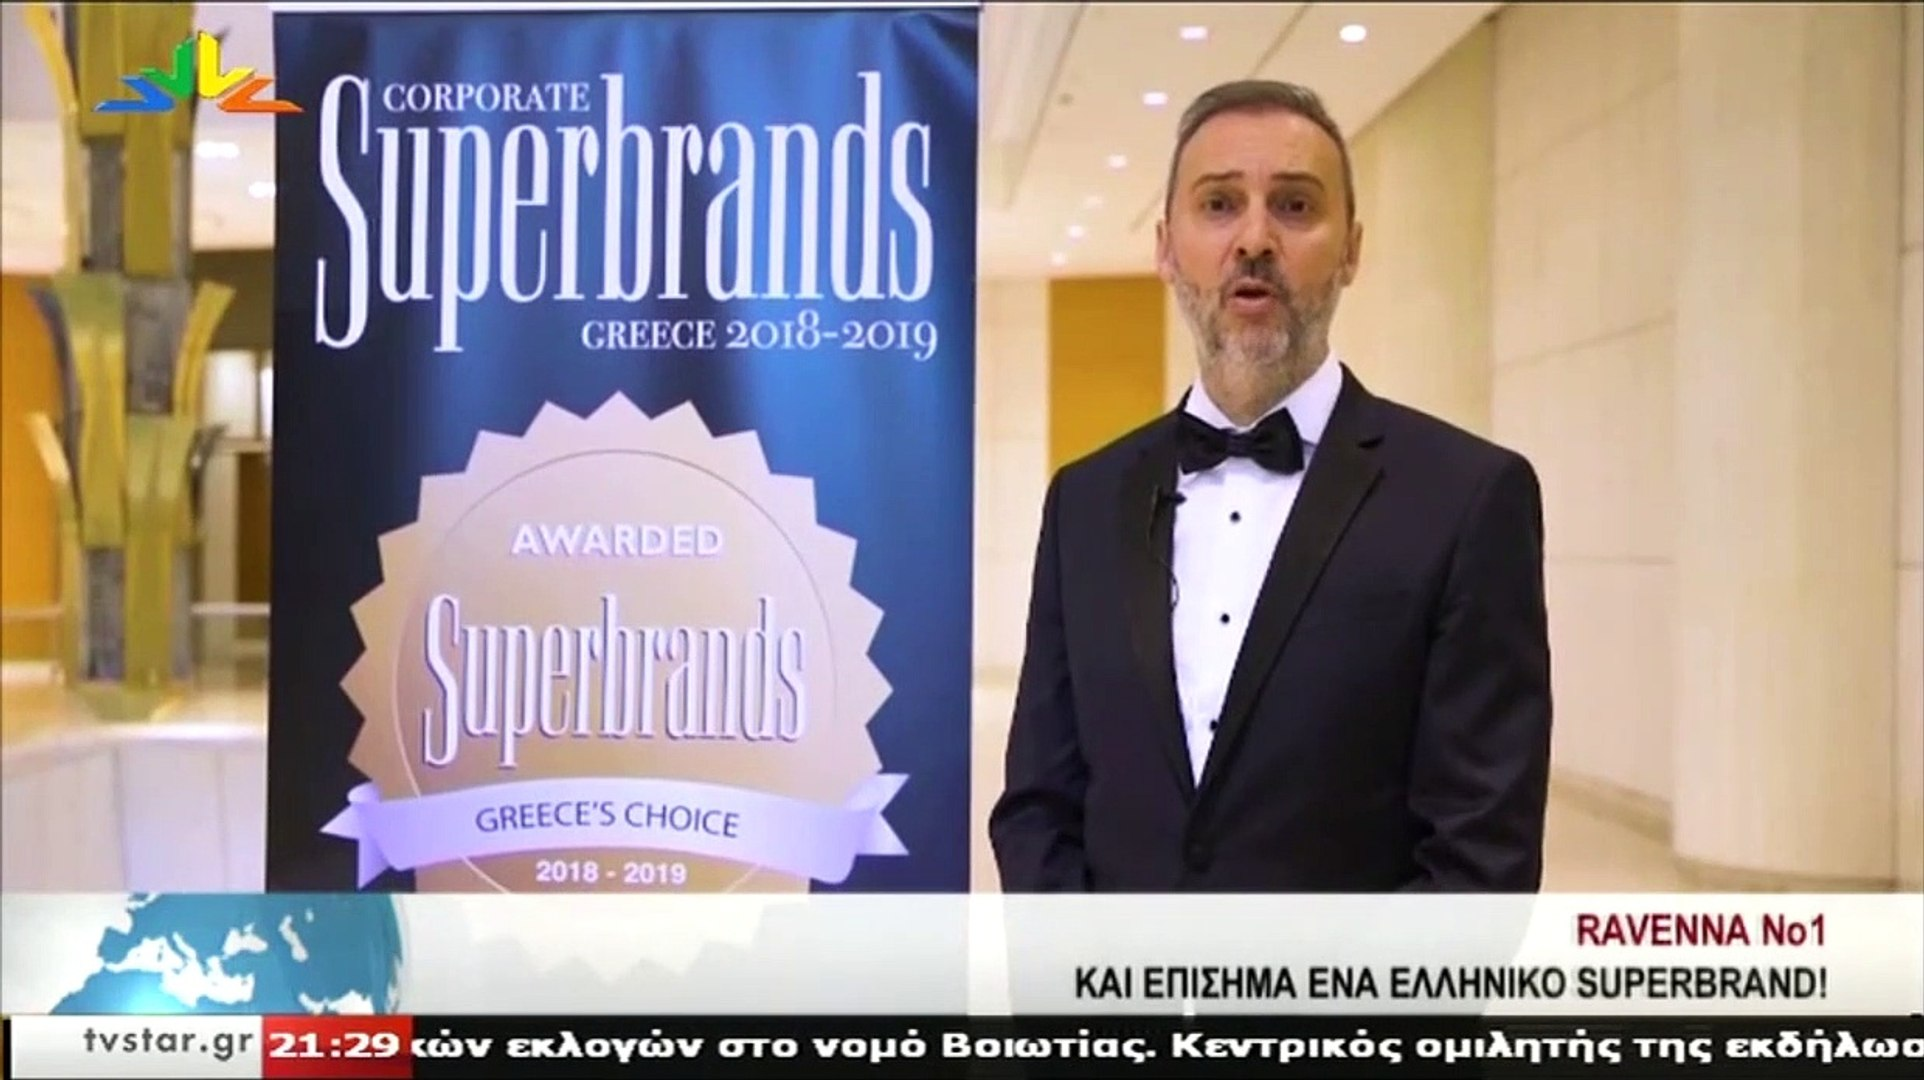 Ravenna Ν1 και επίσημα ένα Ελληνικό Superbrands - video dailymotion